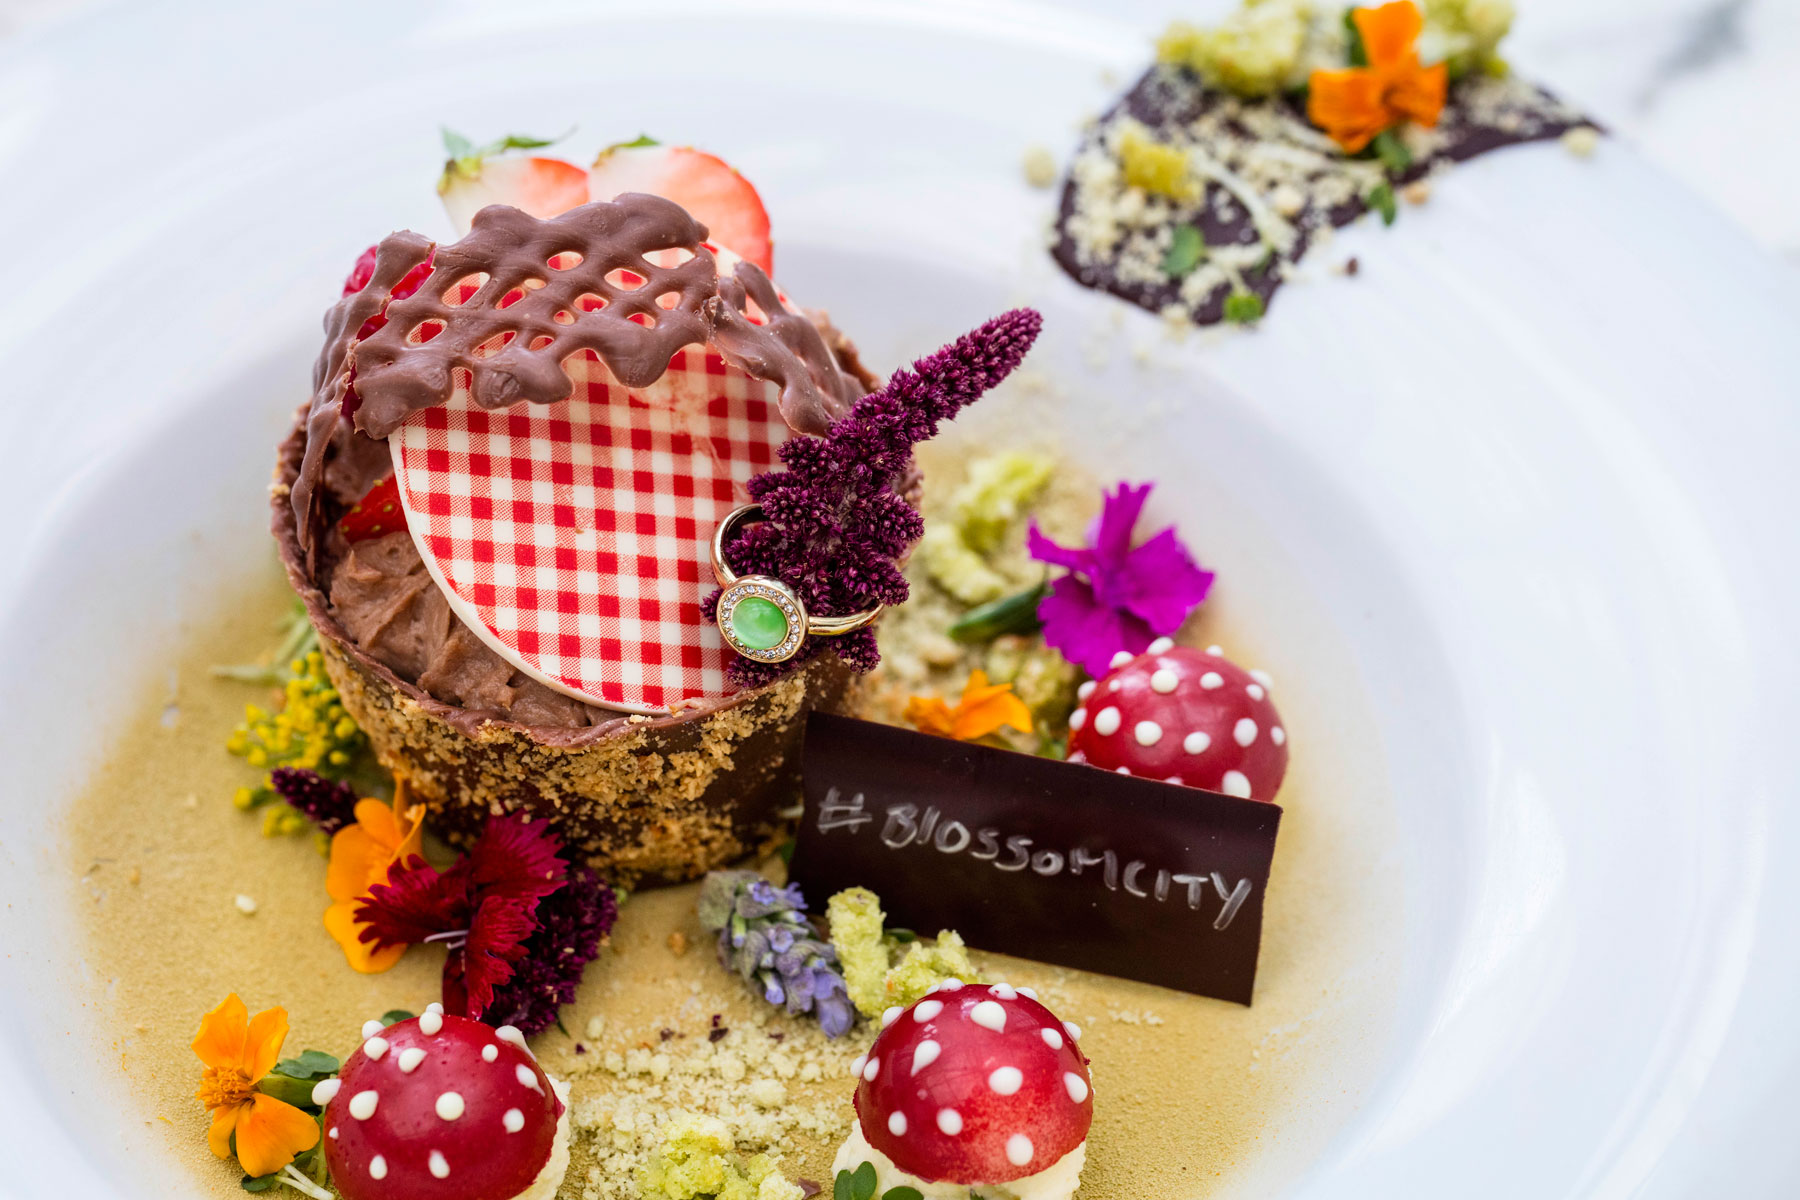 New Blossom City Tasting Menu At The Plateau In Canary Wharf 10